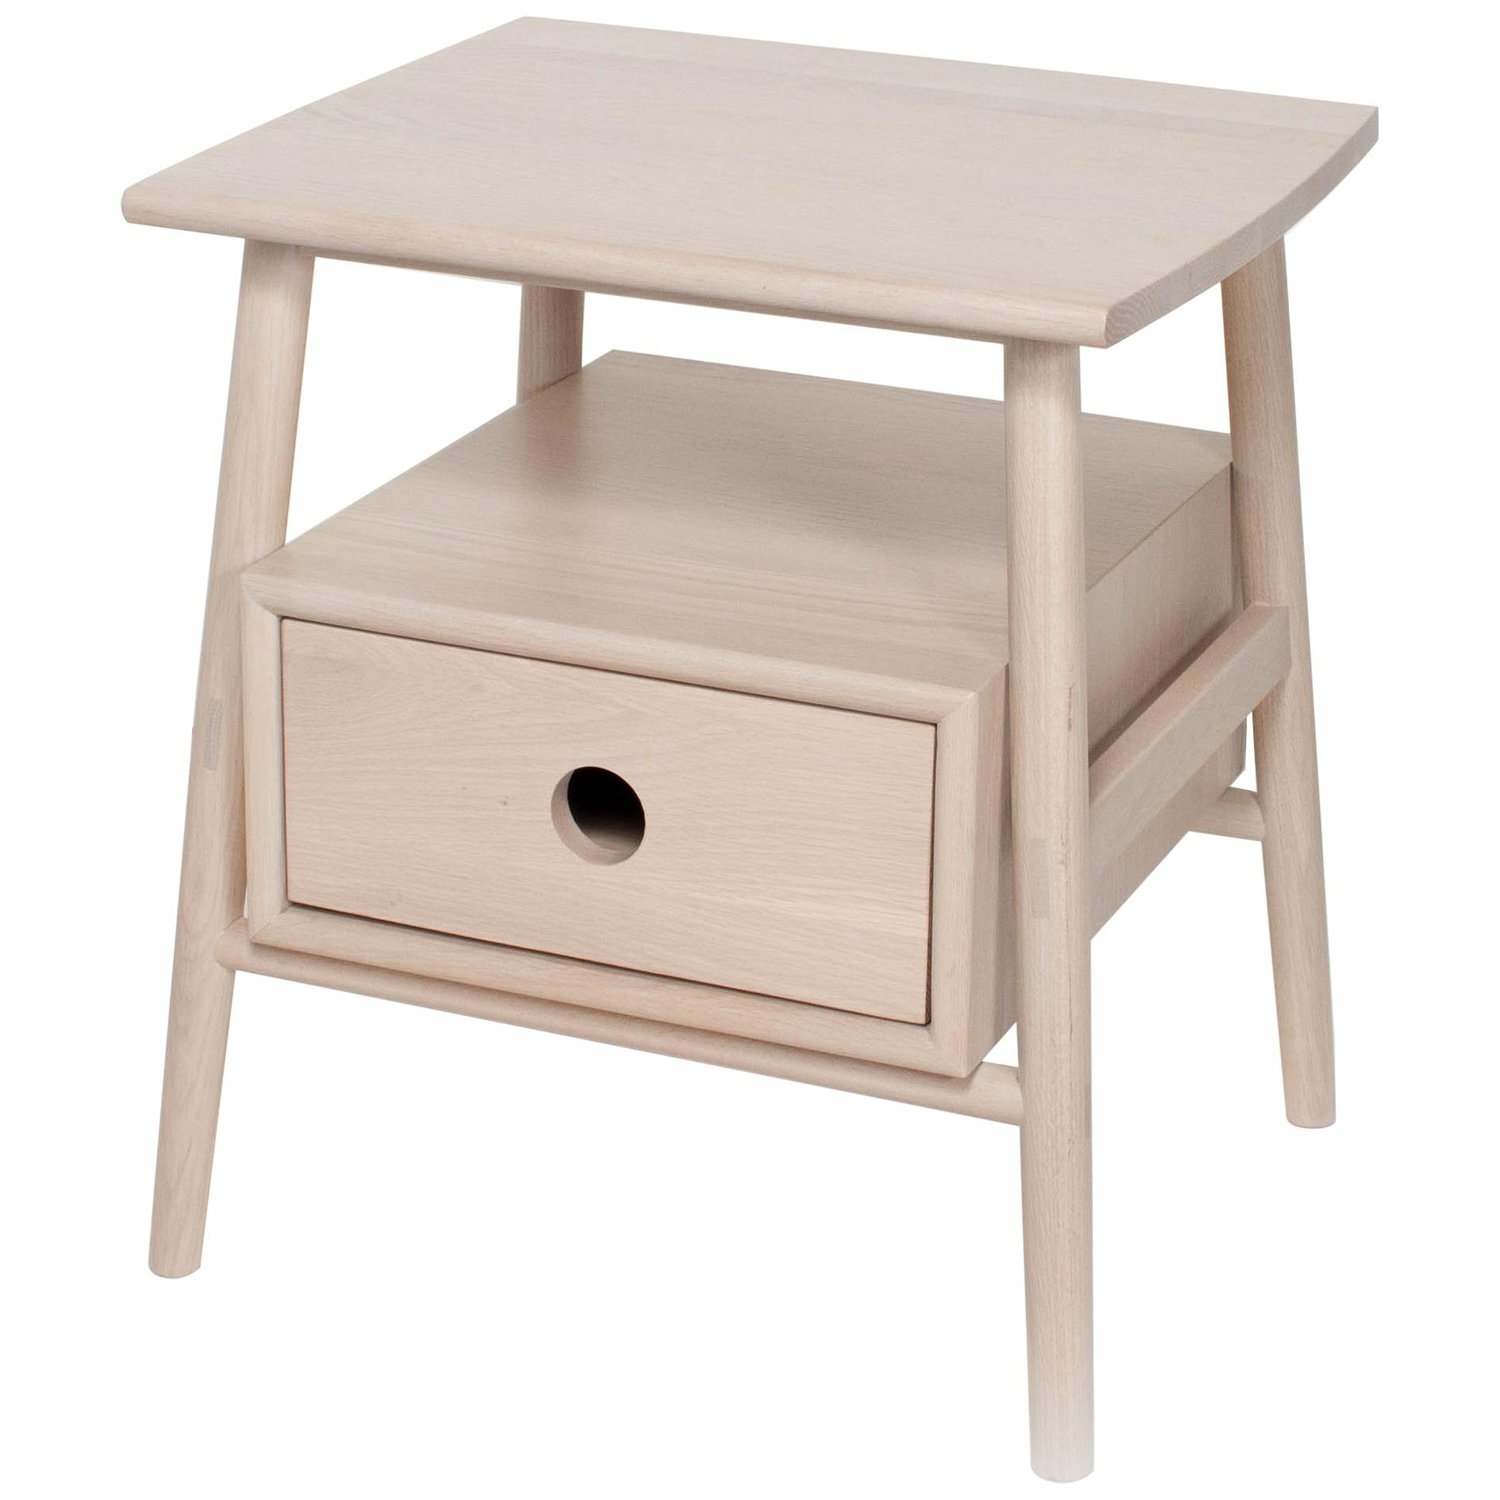 sitka side table mini accent wood for master brass finish coffee ikea kitchen storage cabinets diy legs target project iron large counter height round mirrored end changing pad